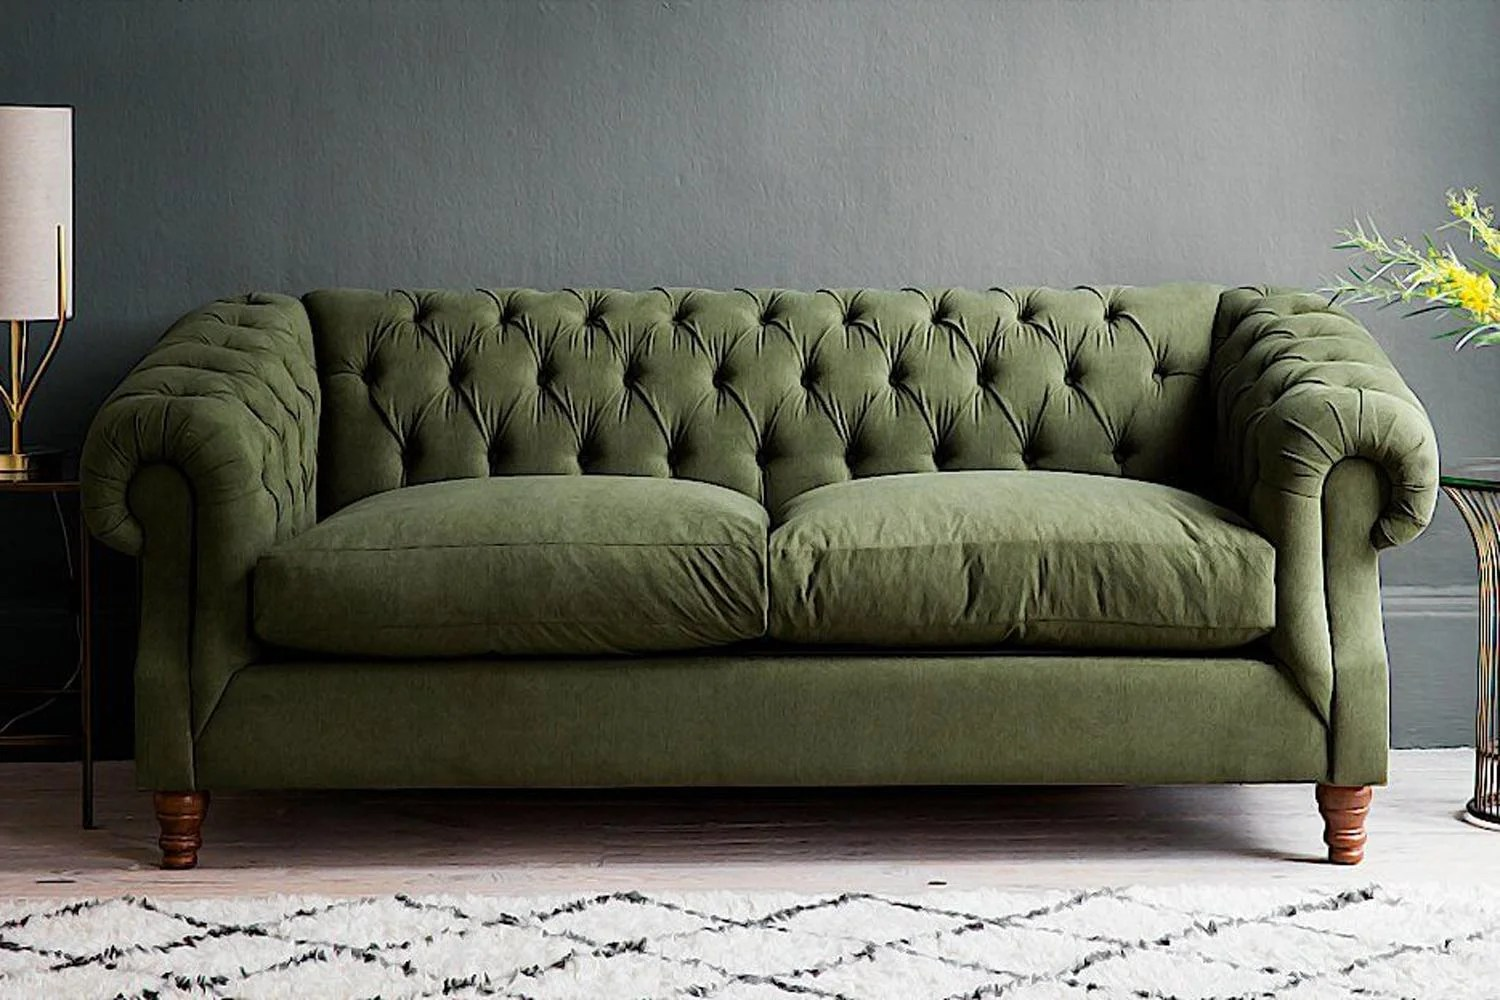 Designer Sofas John Lewis Best Sofa Beds Stylish Small And Double Sofa Beds 2019 London